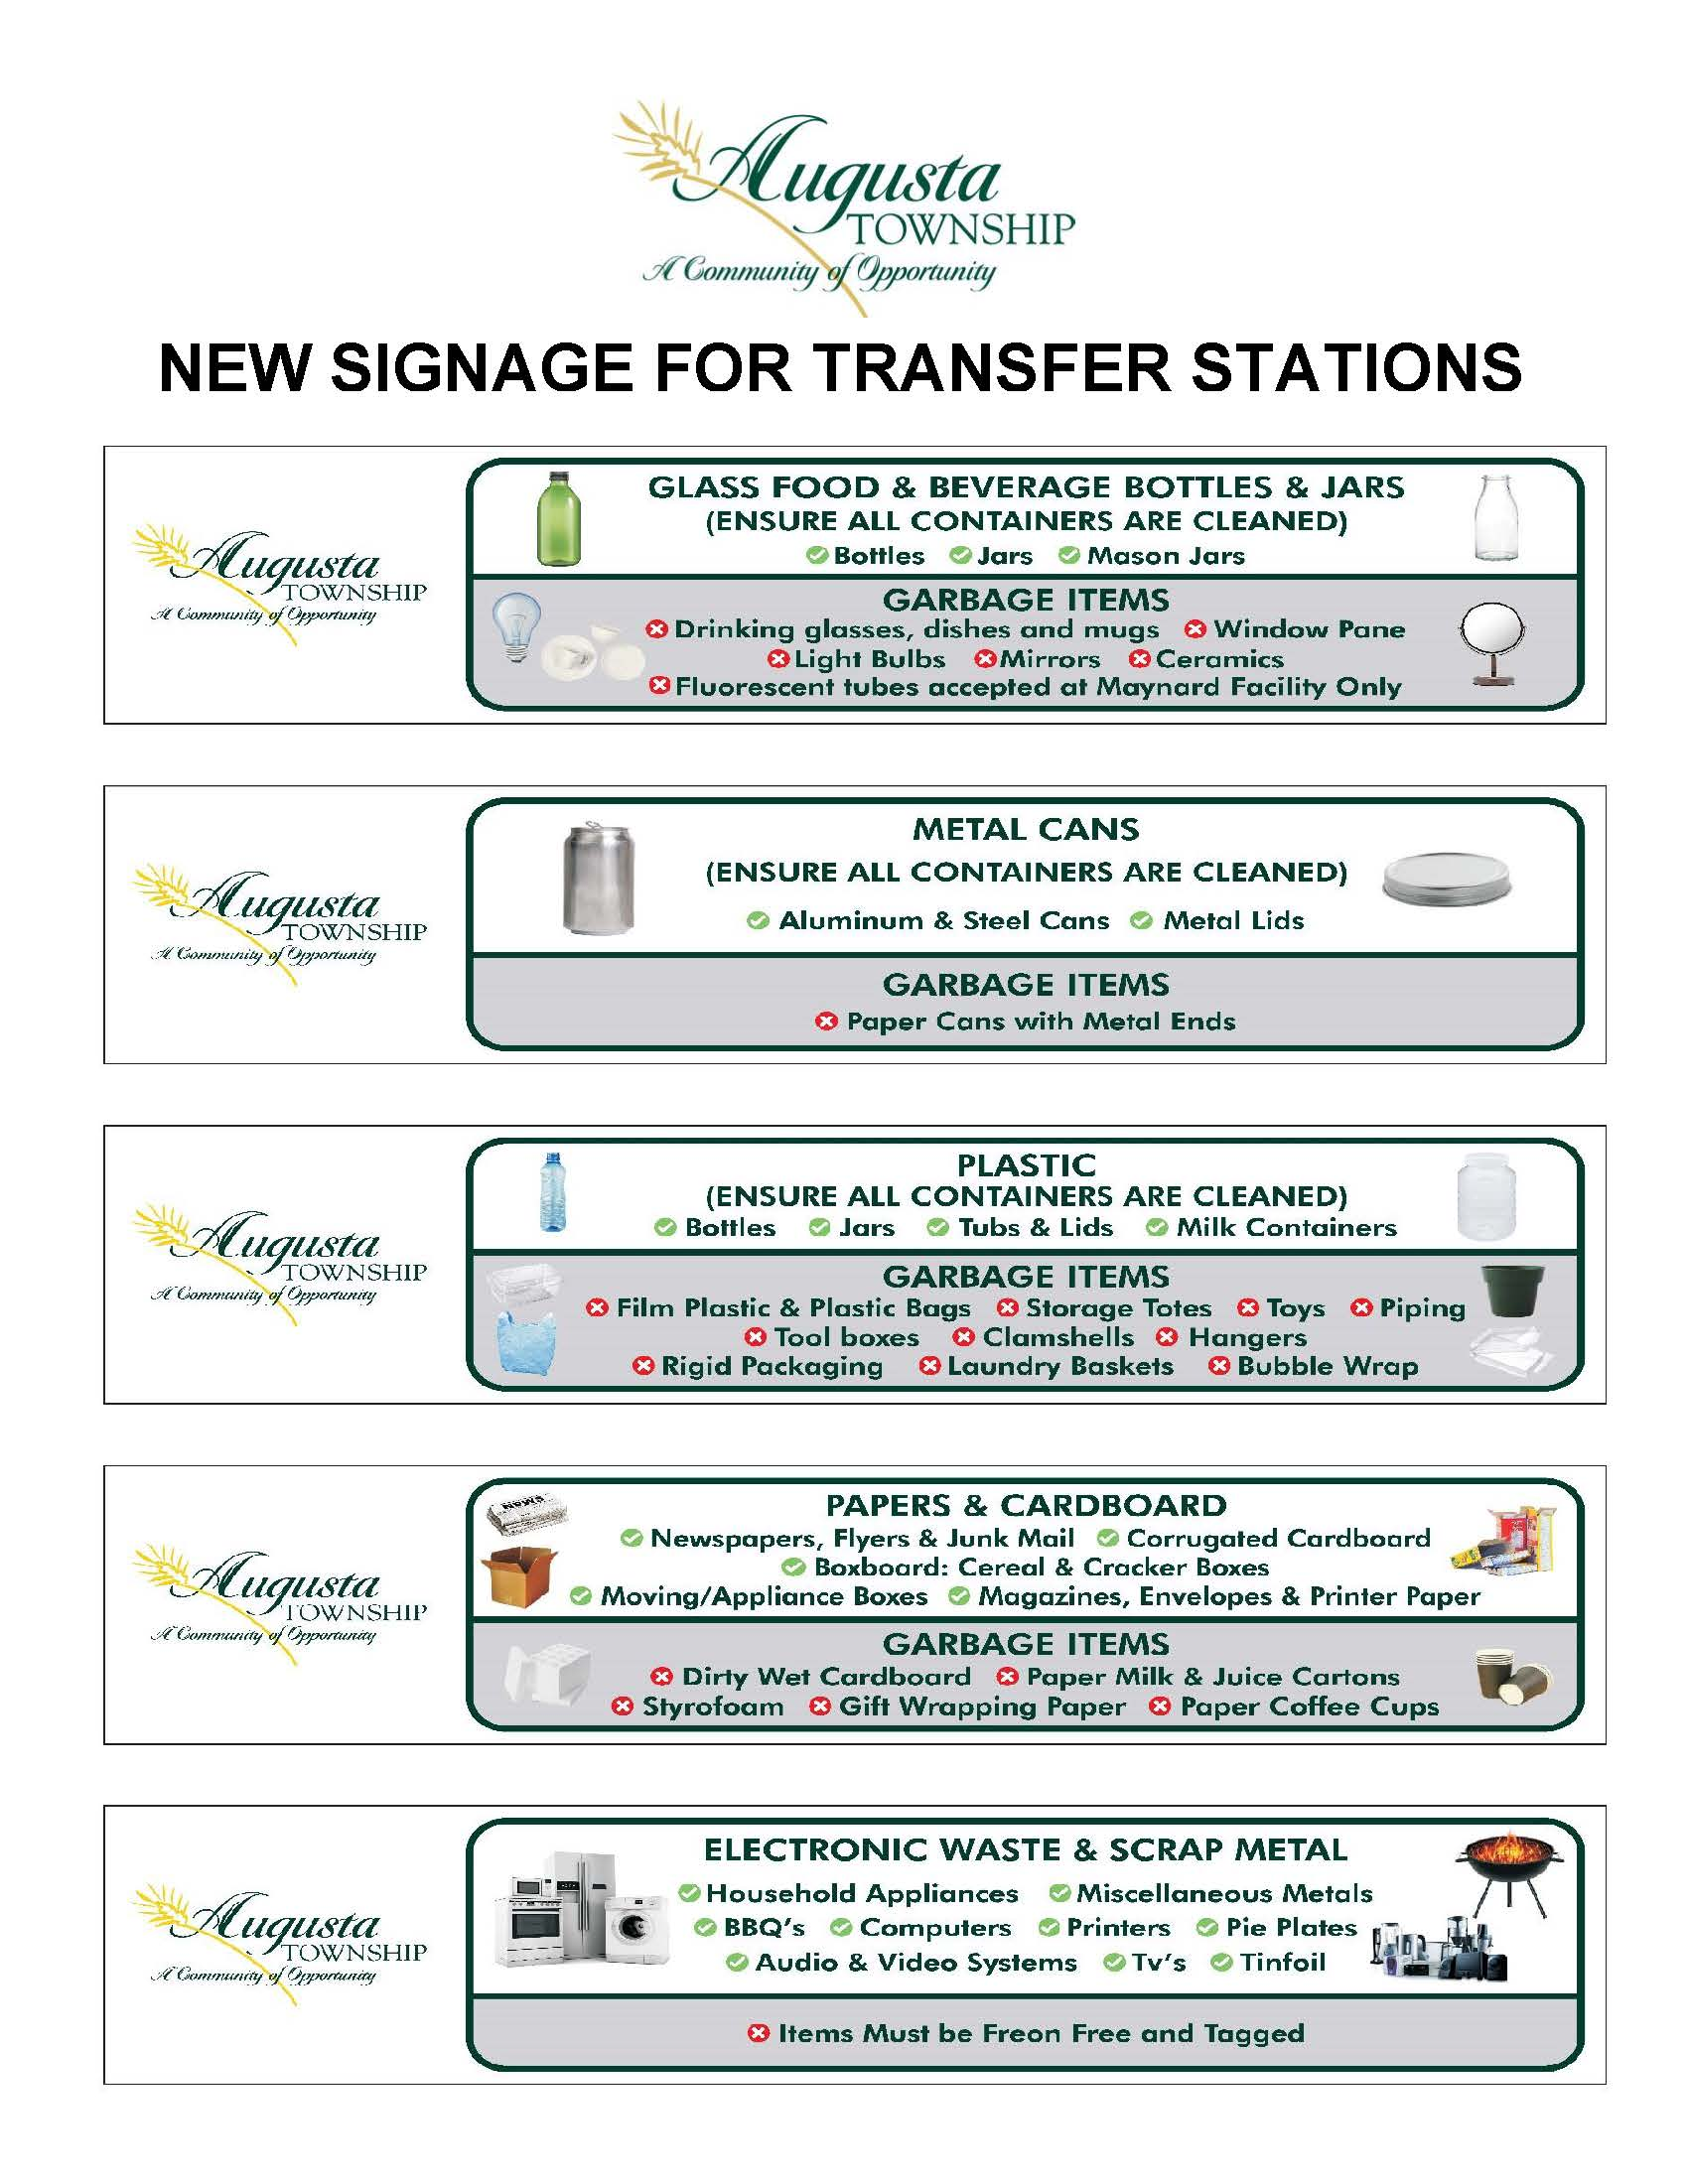 photo of new signage for the transfer station outlying what is acceptable for recycling